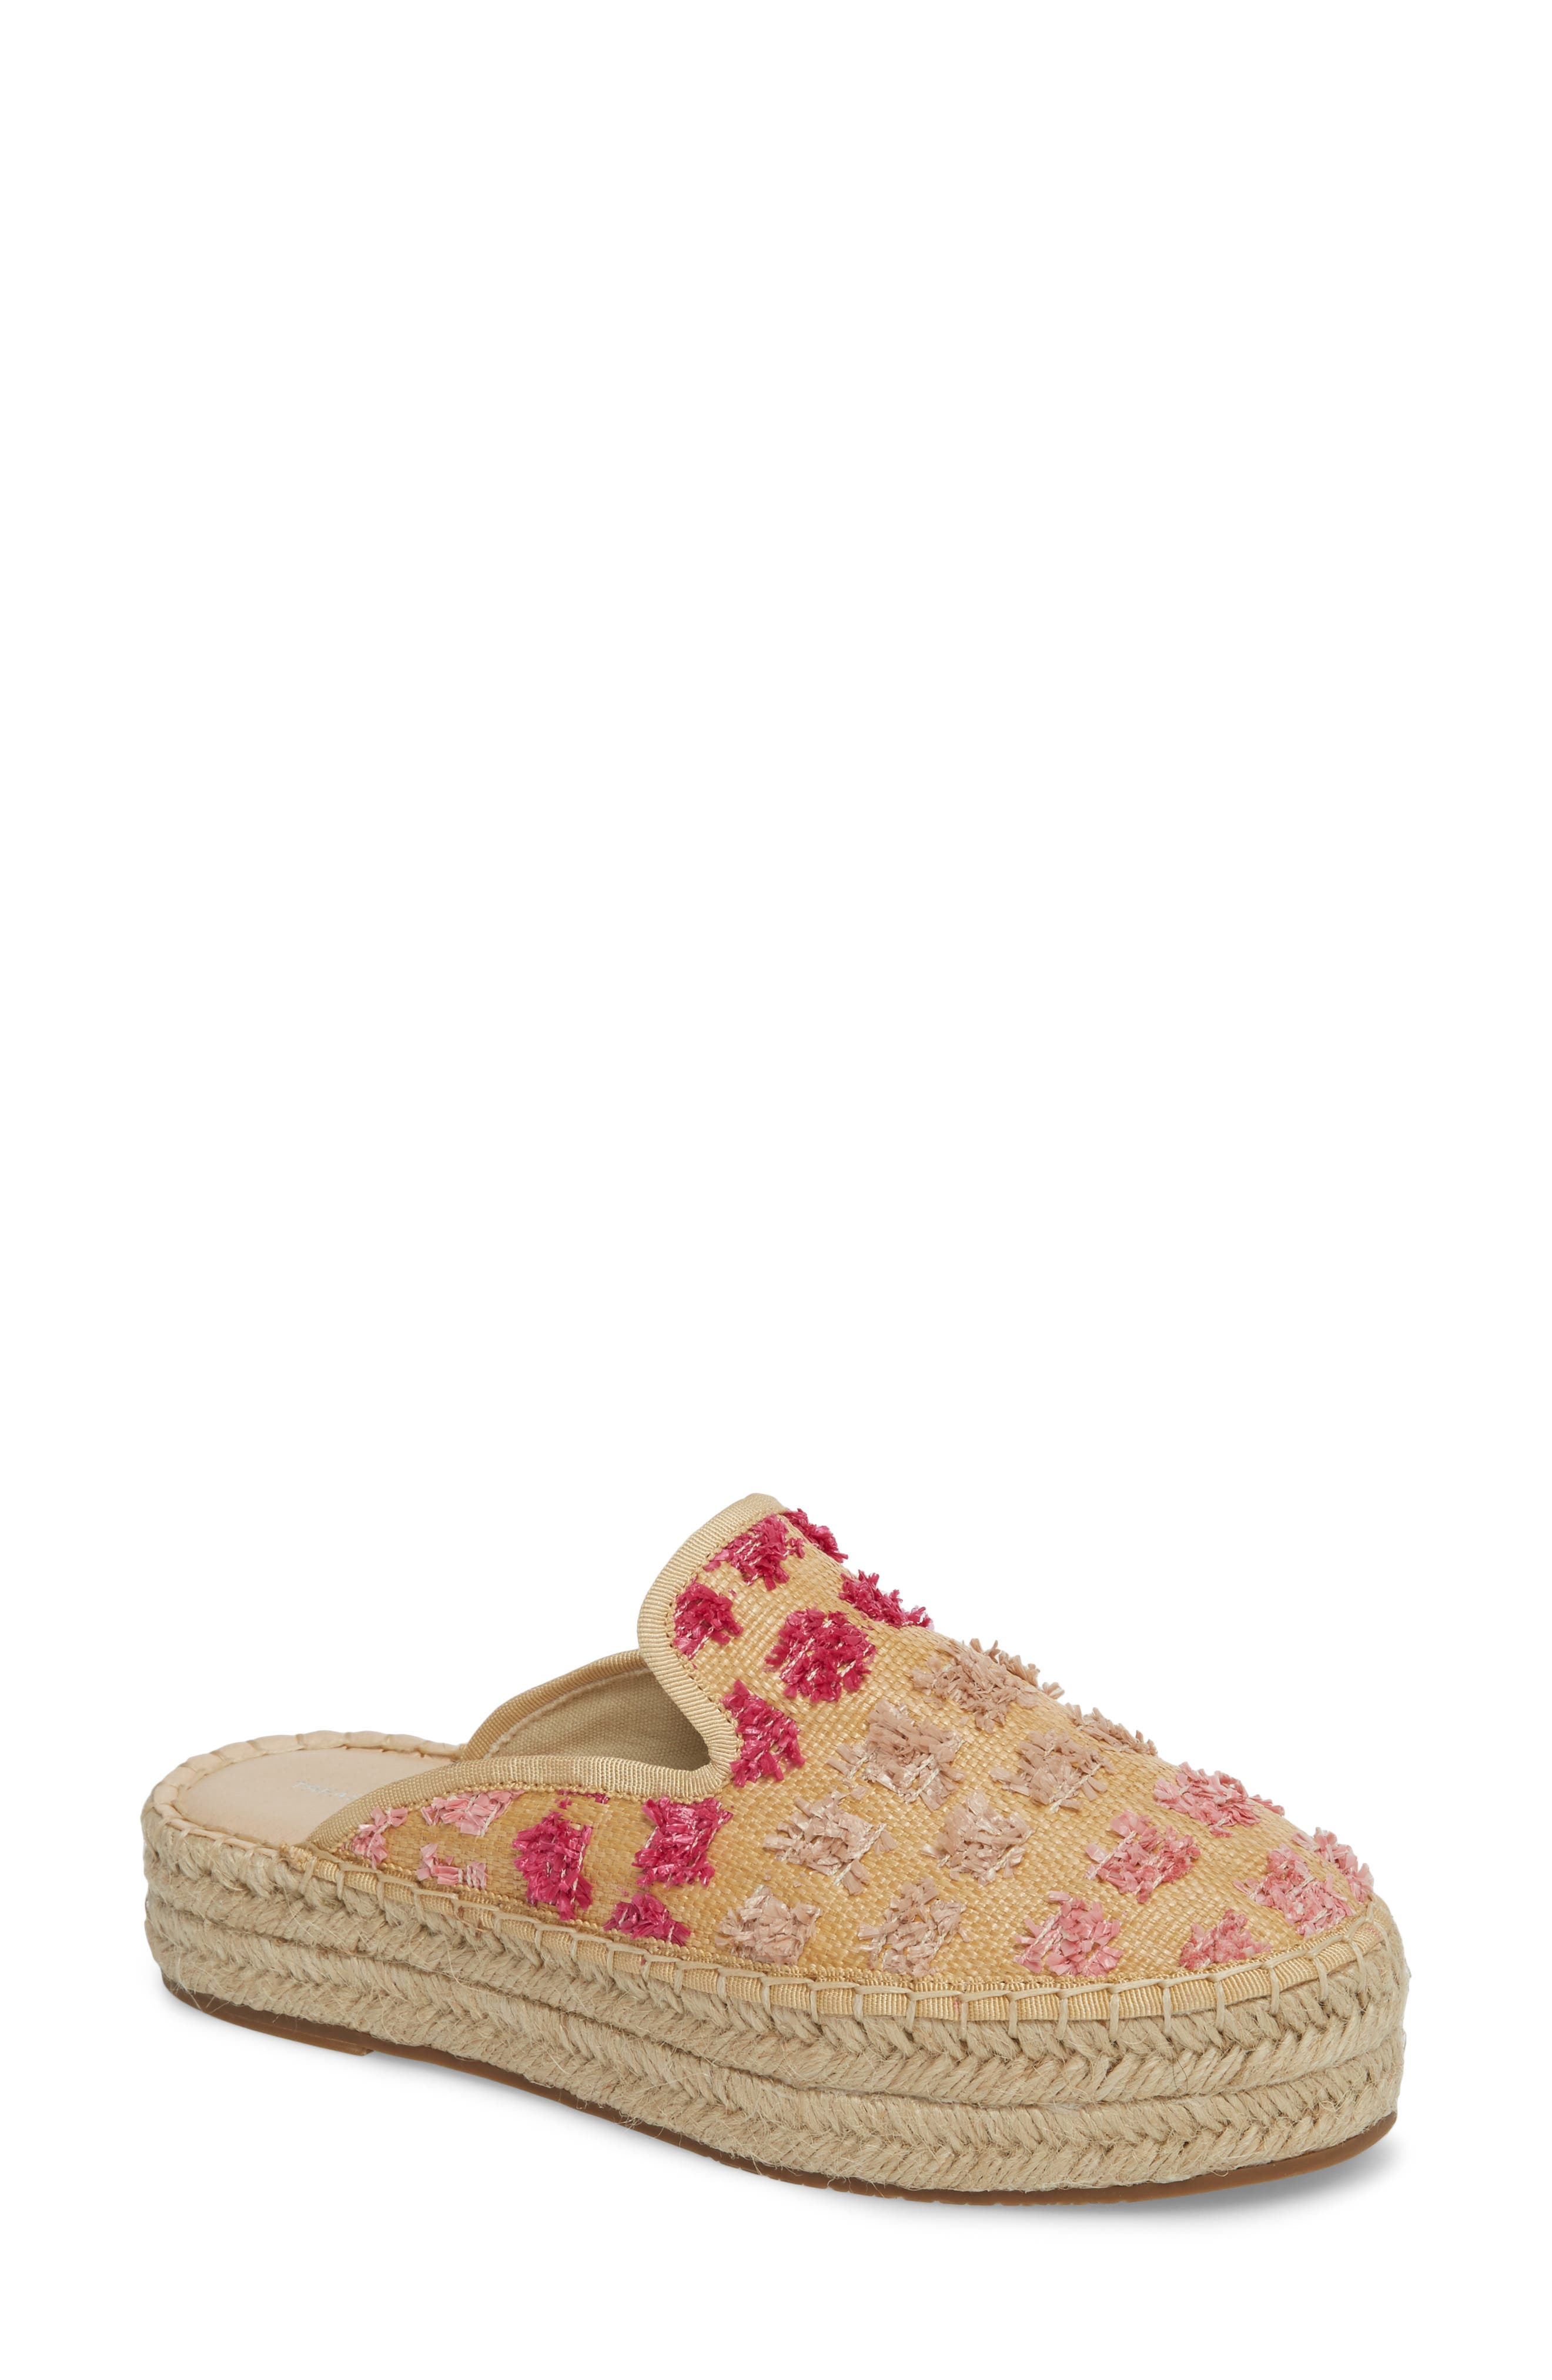 Treasure & Bond Marlowe Tufted Espadrille Loafer Mule (Women)